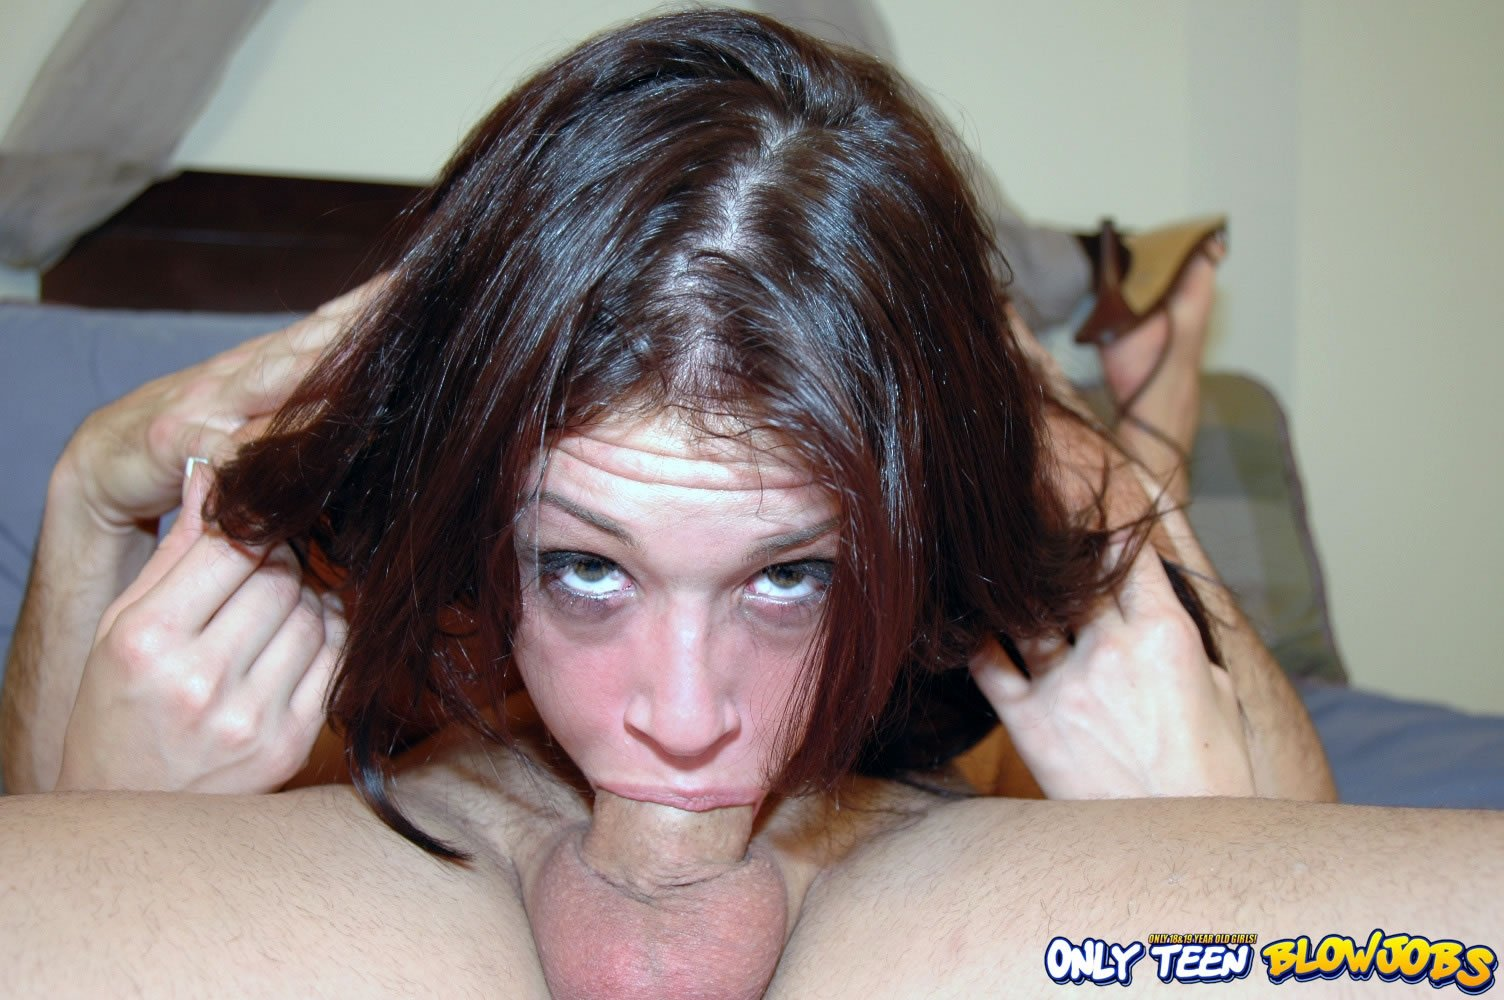 kira reed blowjob there